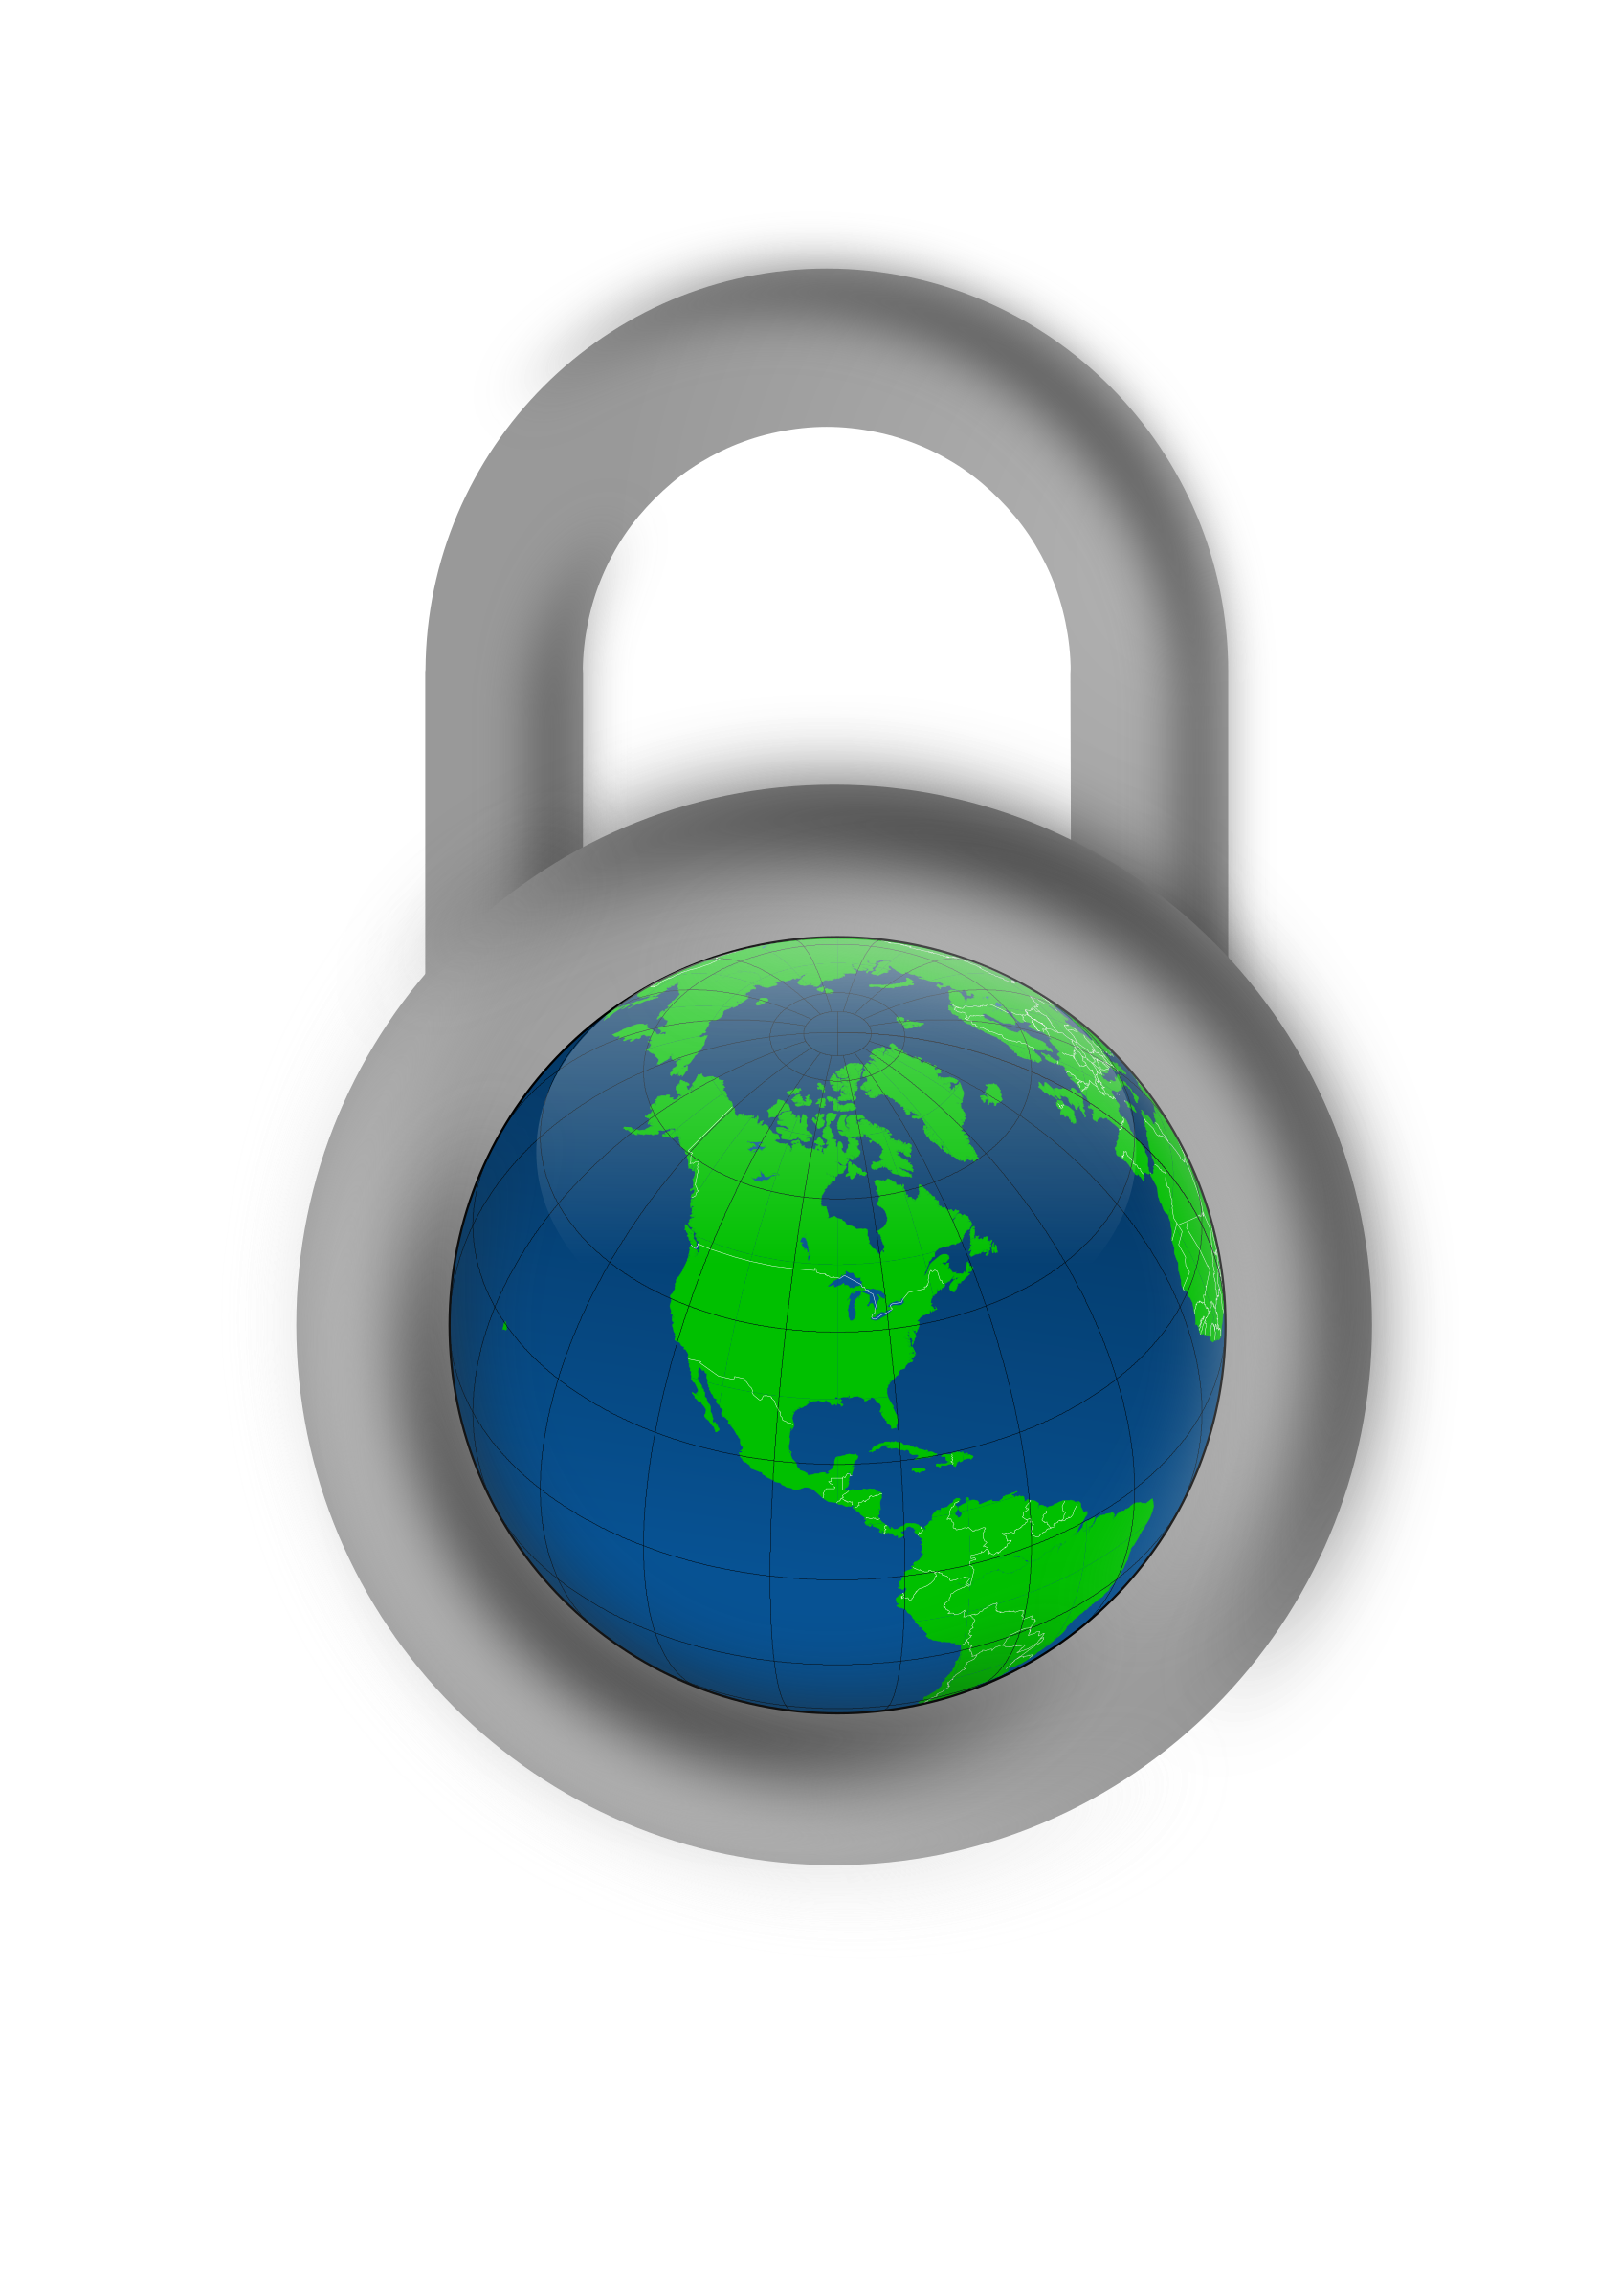 Secure about the big. Clipart world globe north america